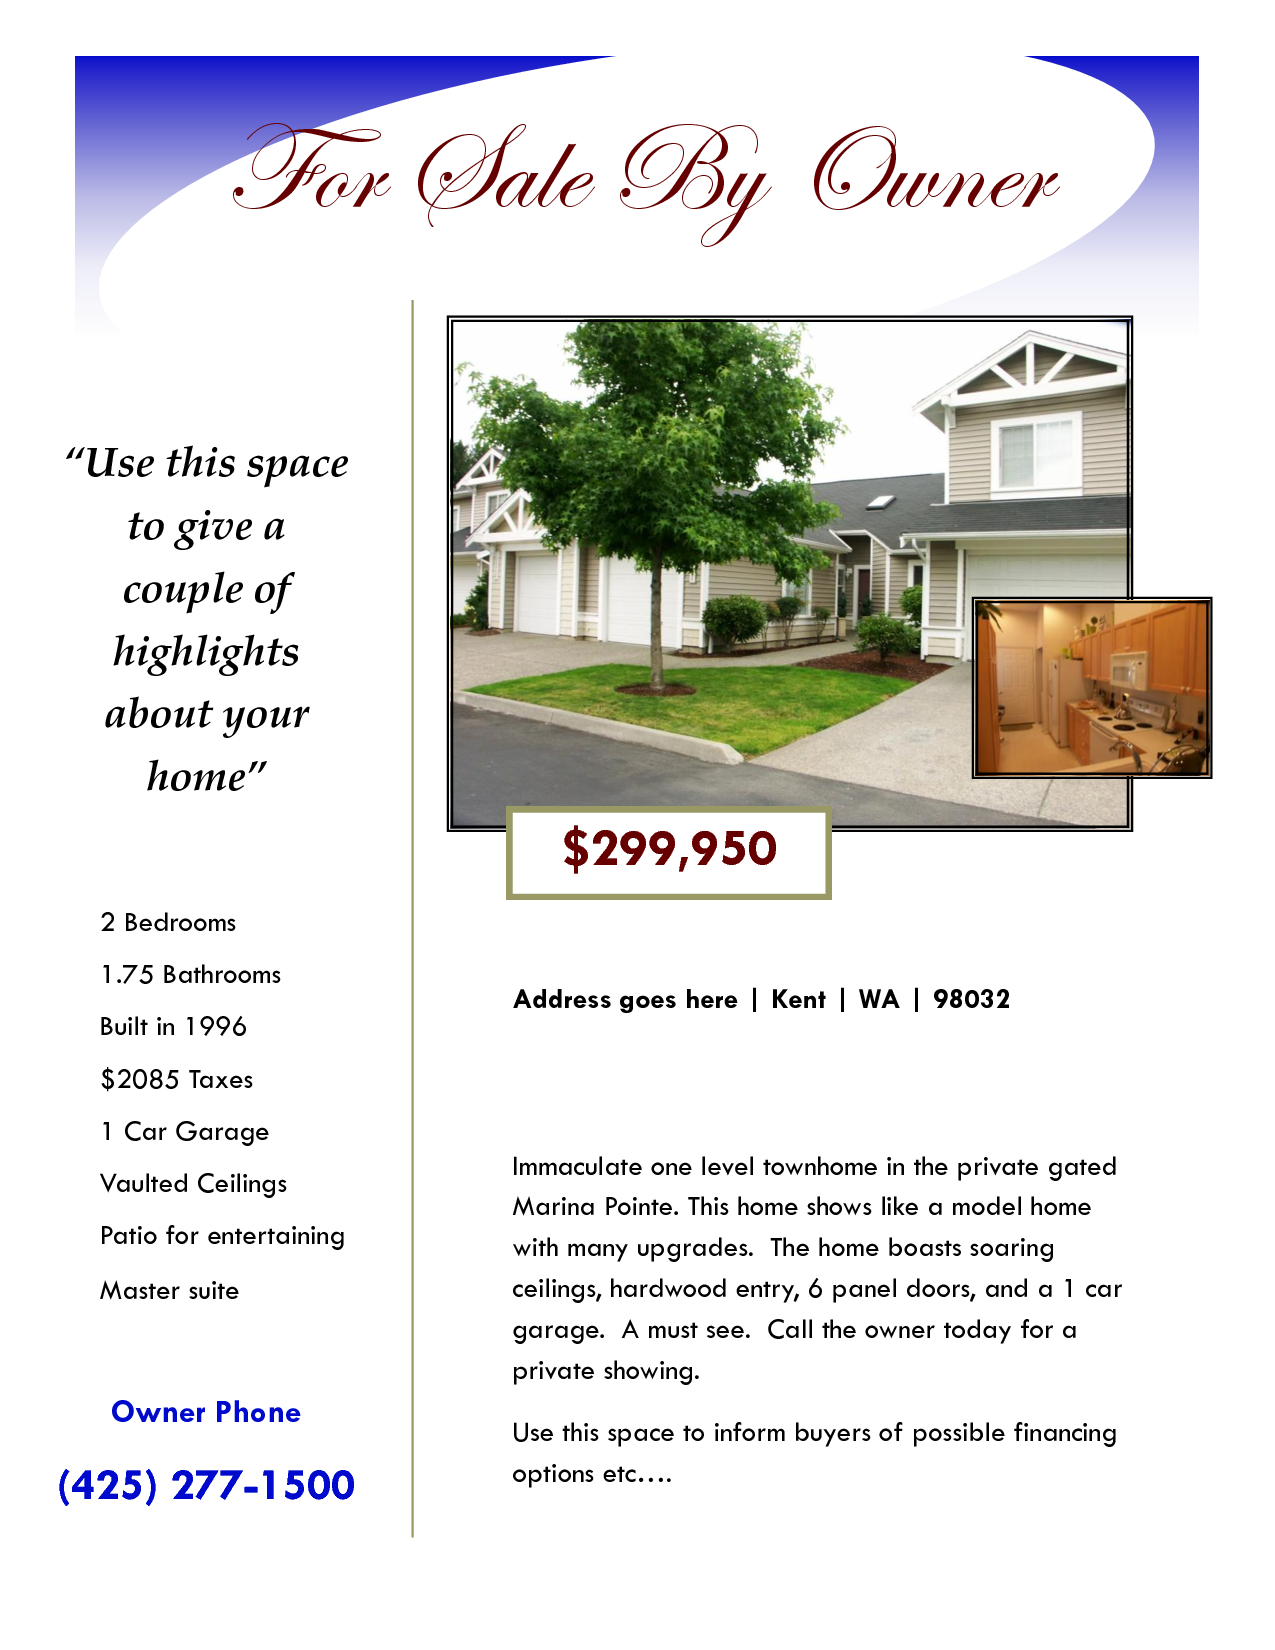 House For Sale Flyer Google Search Real Estate Flyers  2fcfc78a40b3c22adba89f4cb193d1fd 481251910159462023. Printable Car For Sale  Sign Template  Car Sale Sign Template